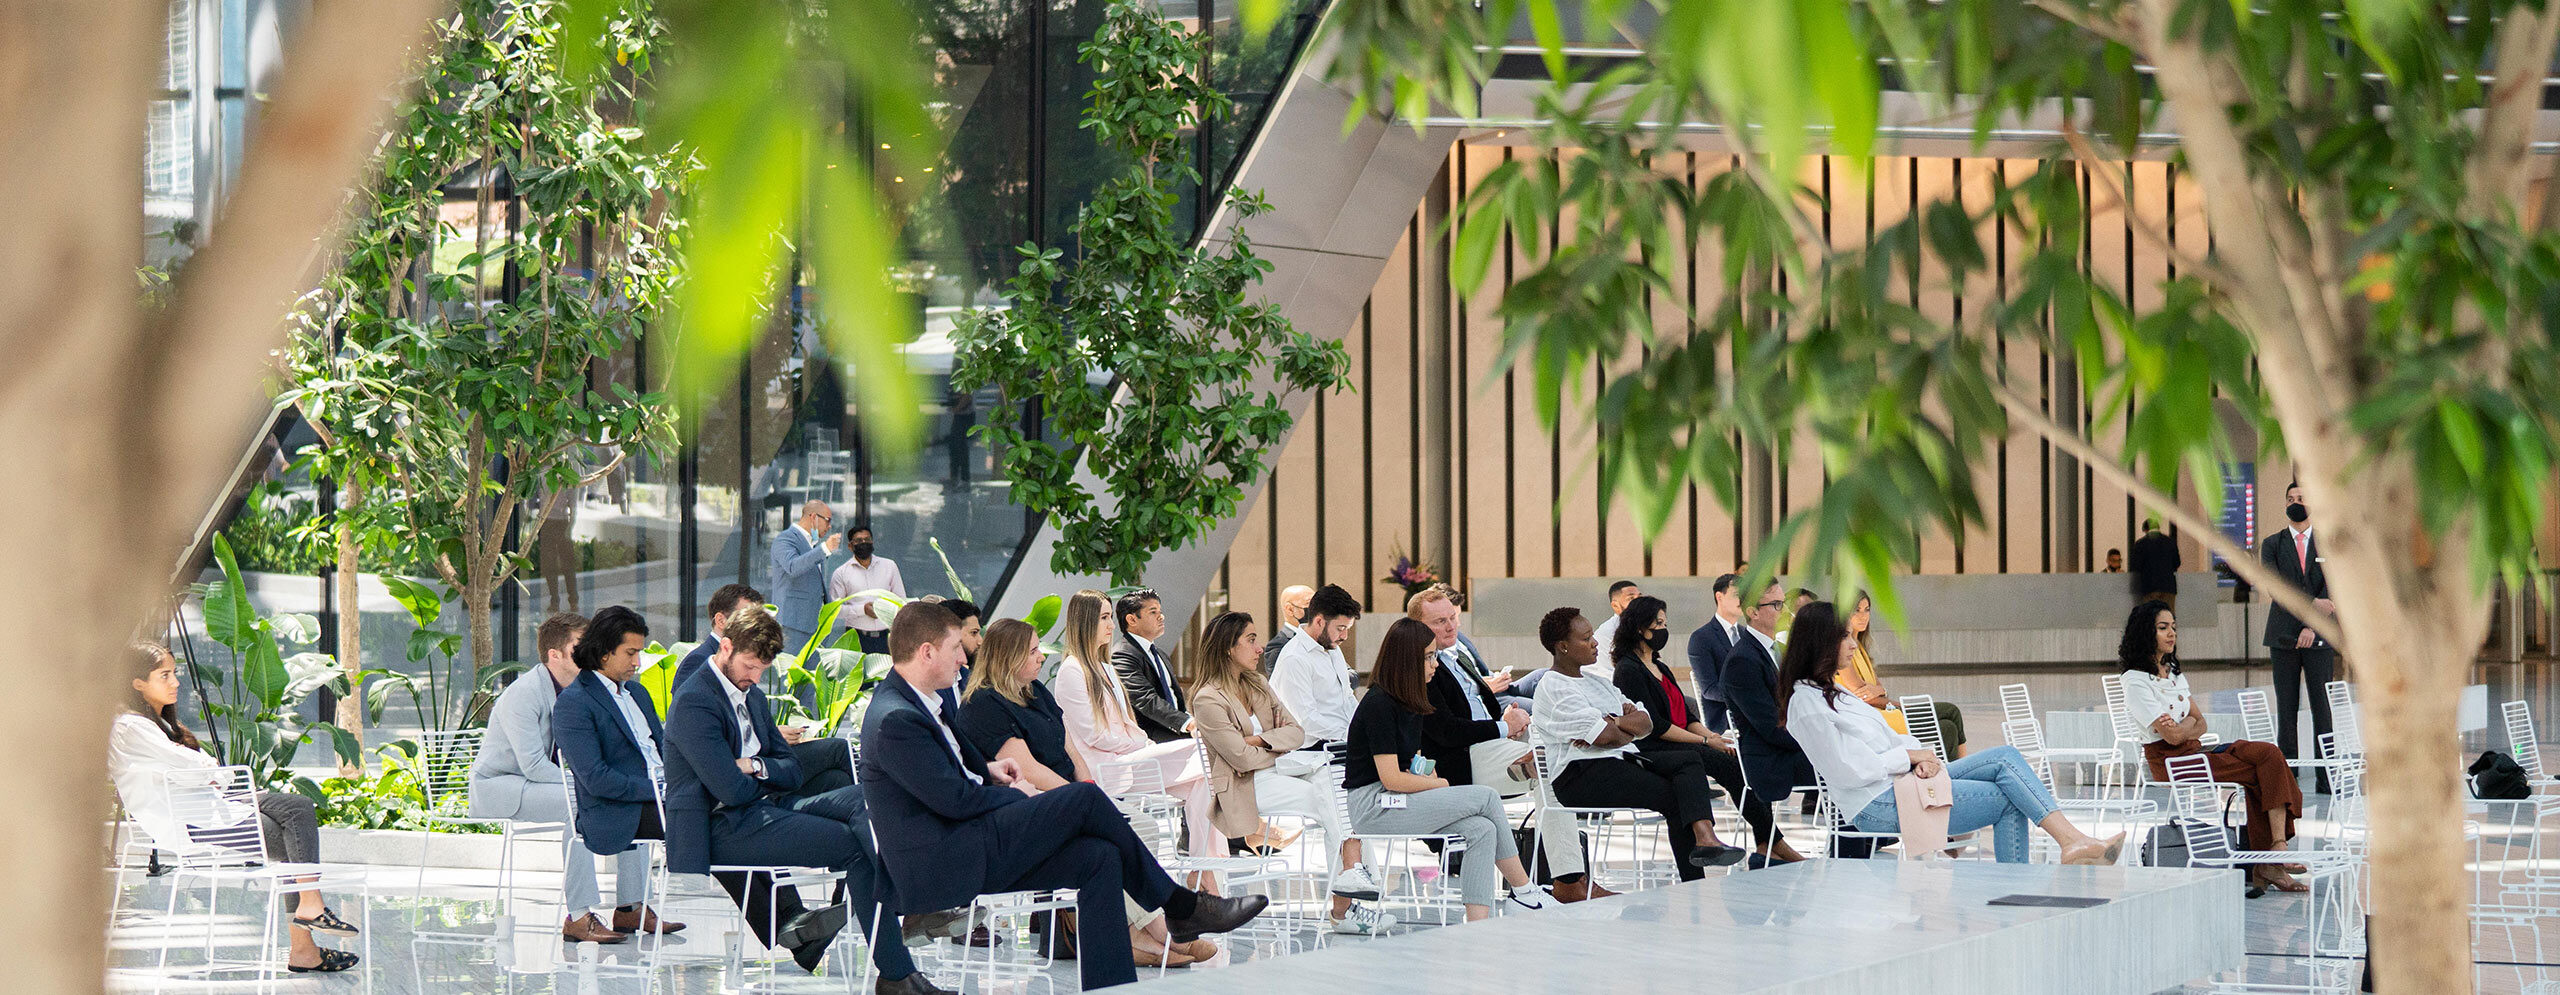 ICD Brookfield Place Dubai Breathe easy – air quality and the importance of office wellbeing